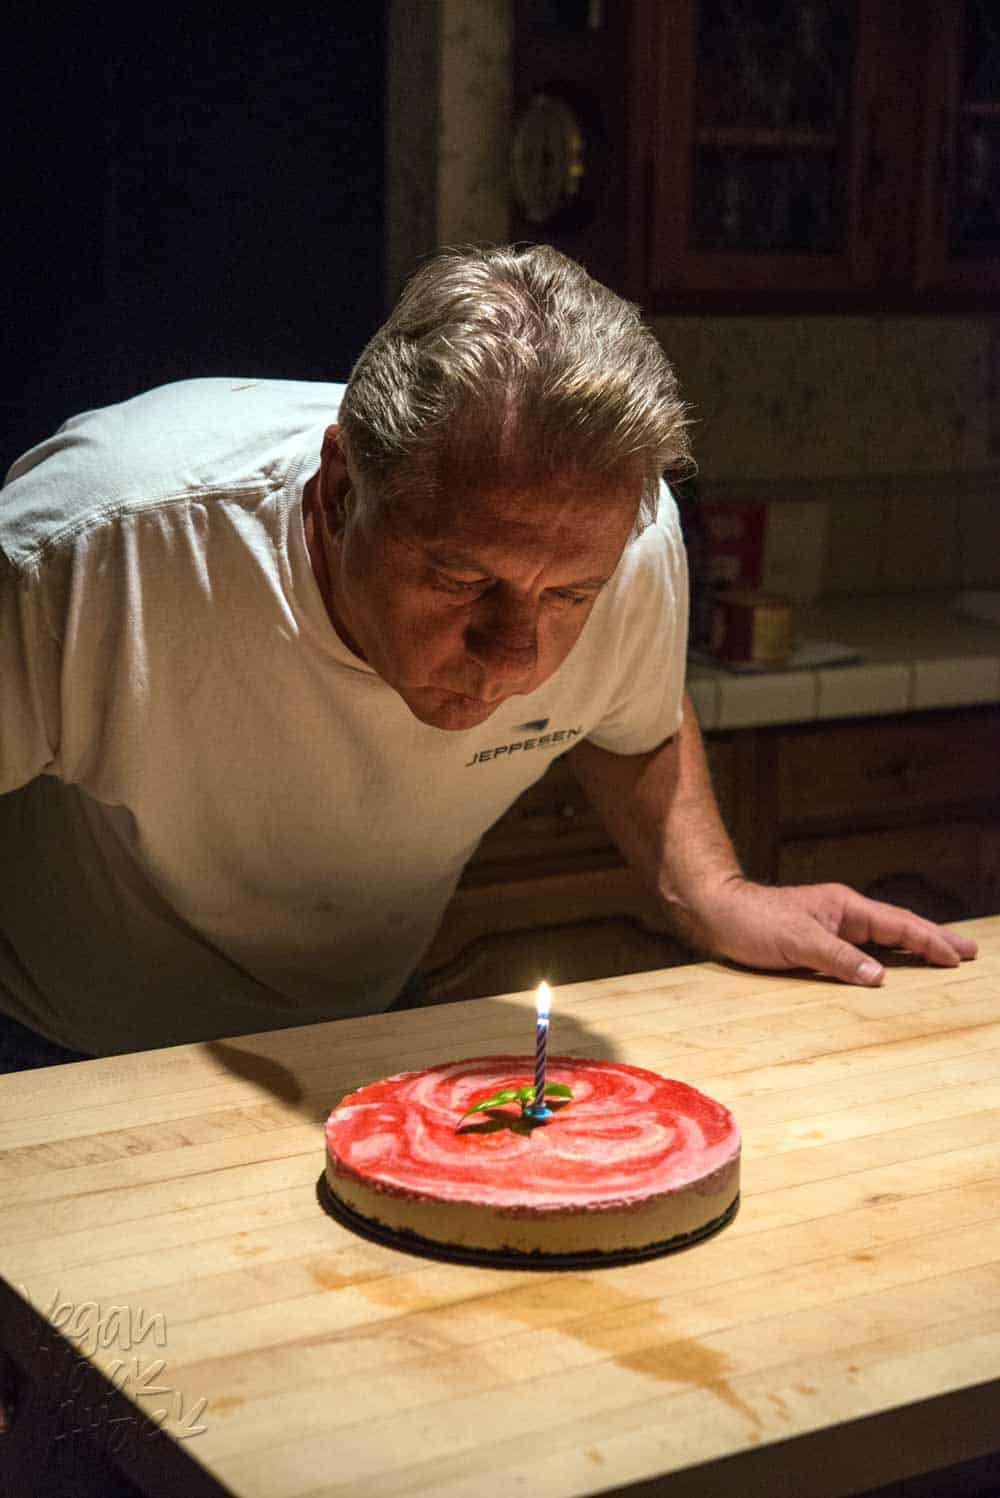 Older gentleman blowing out birthday candle on cheesecake